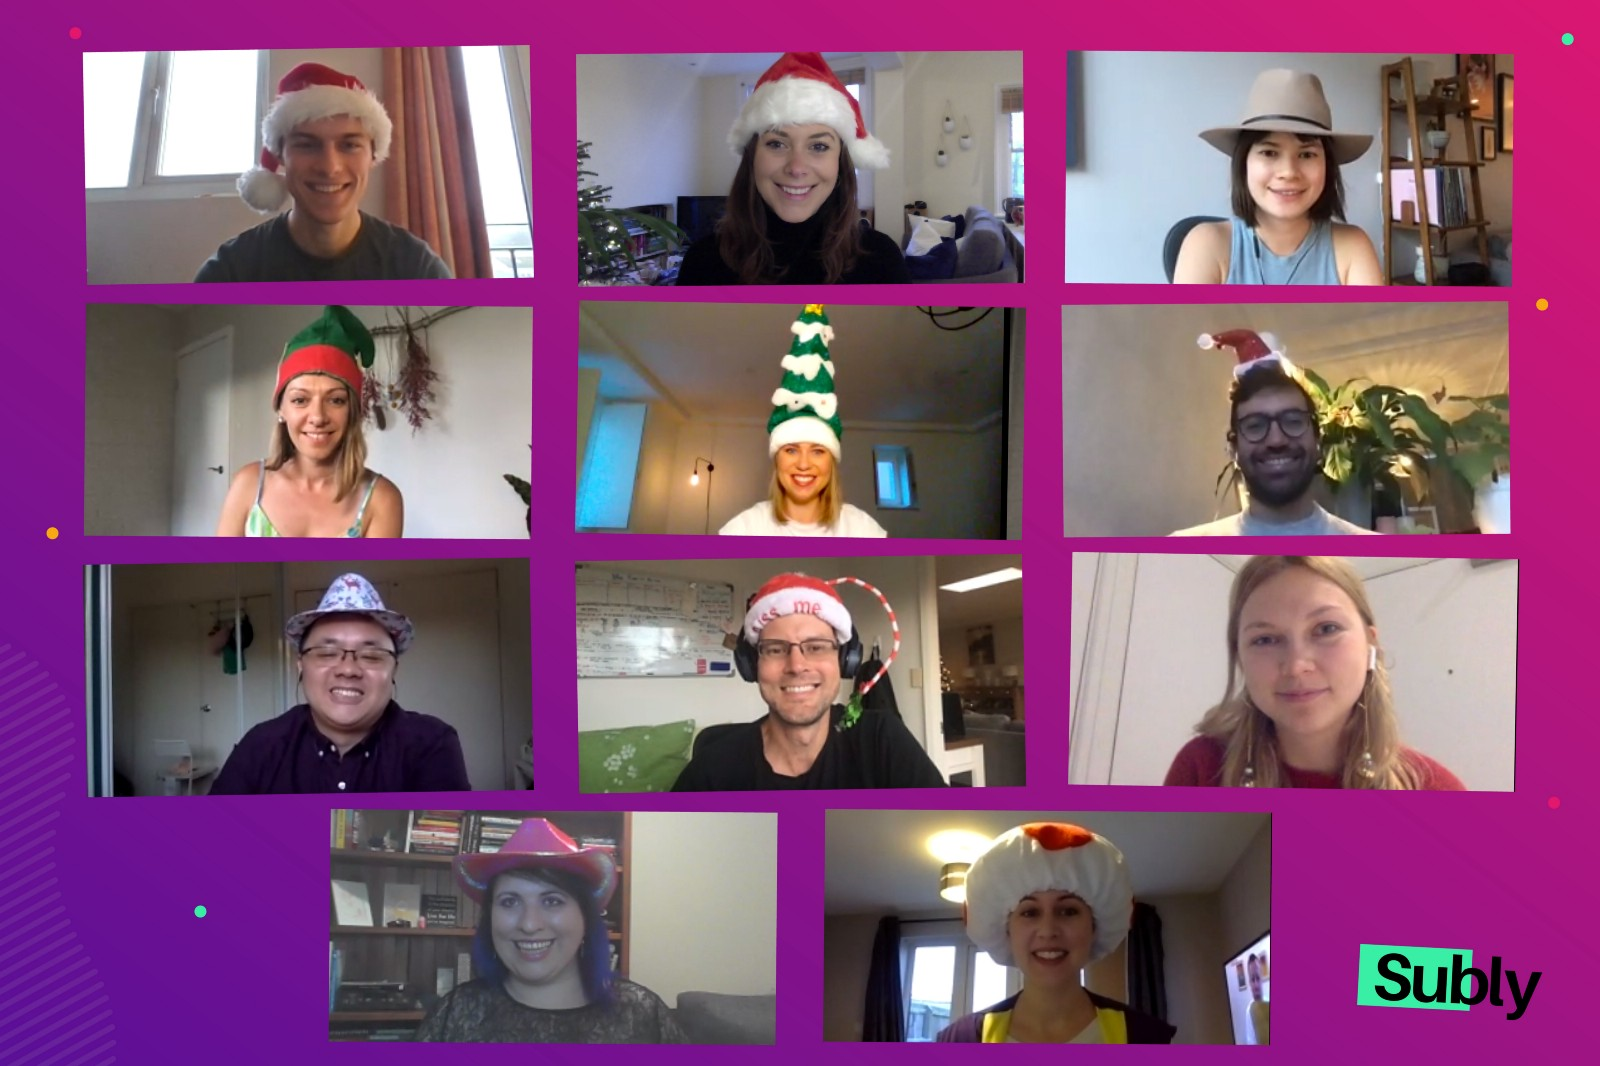 Subly team festive photo for holidays on online call